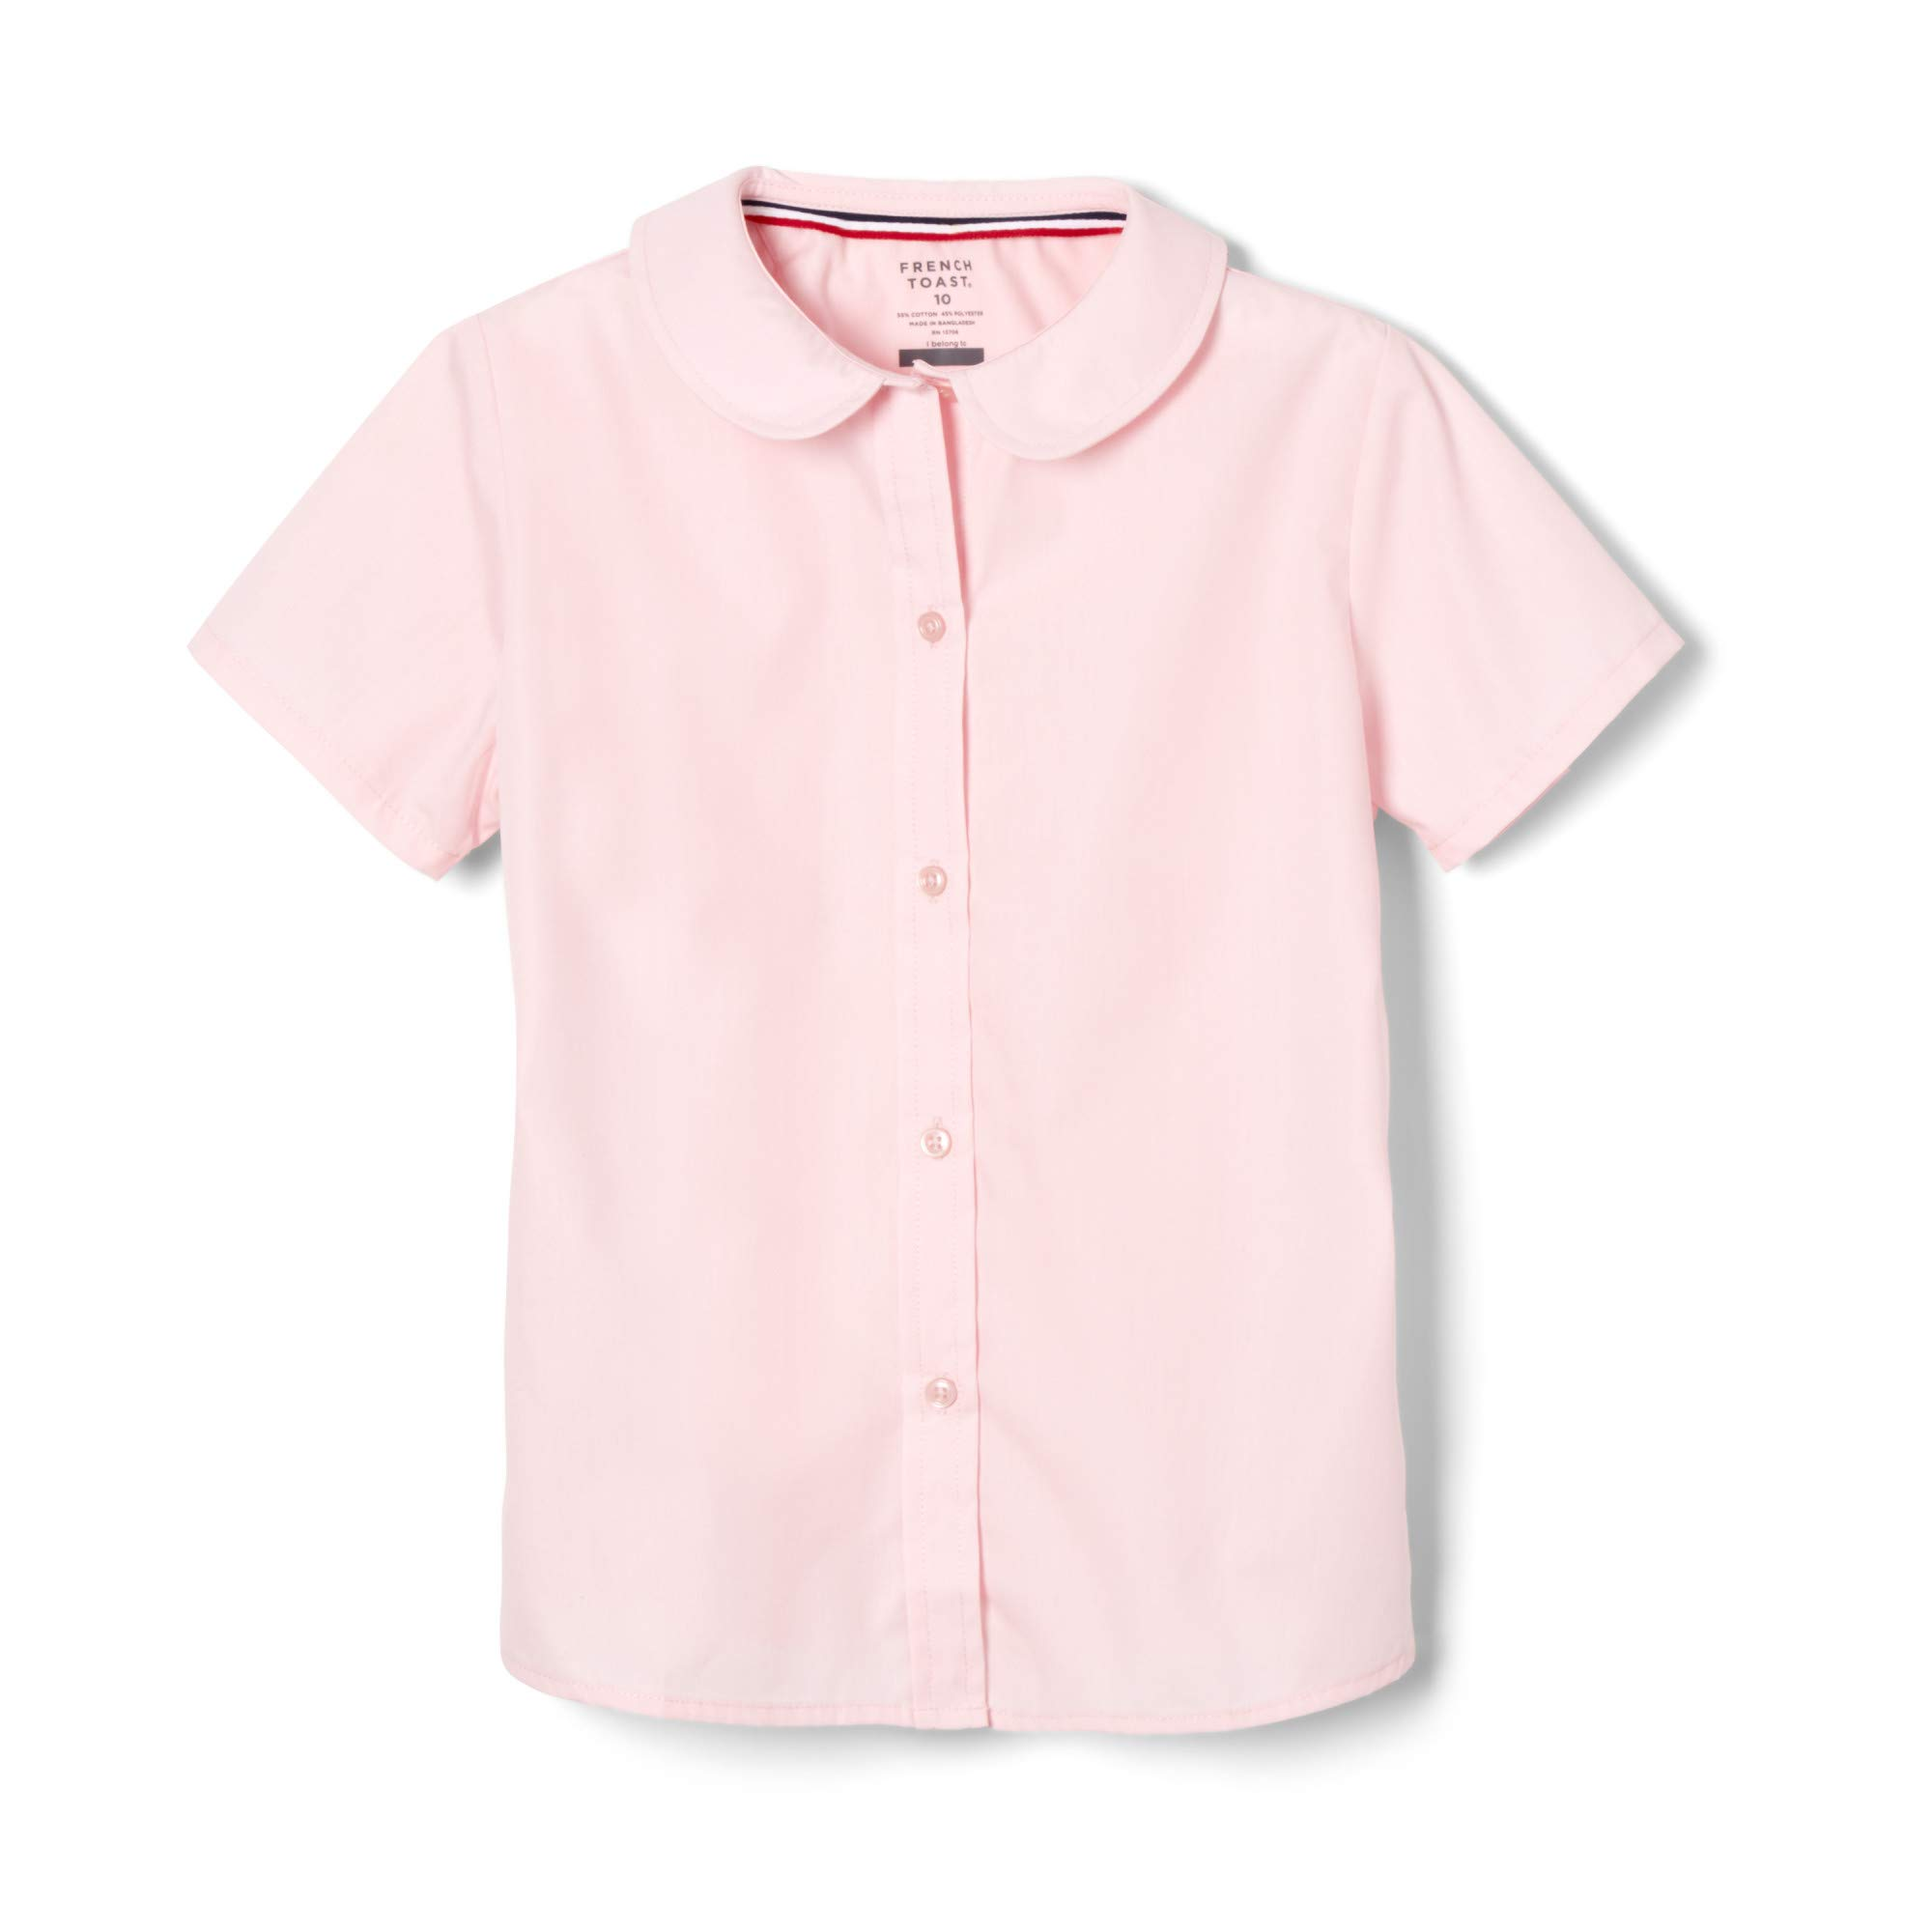 French Toast Toddler Girls Short Sleeve Modern Peter Pan Collar Blouse, Pink, 4T by French Toast